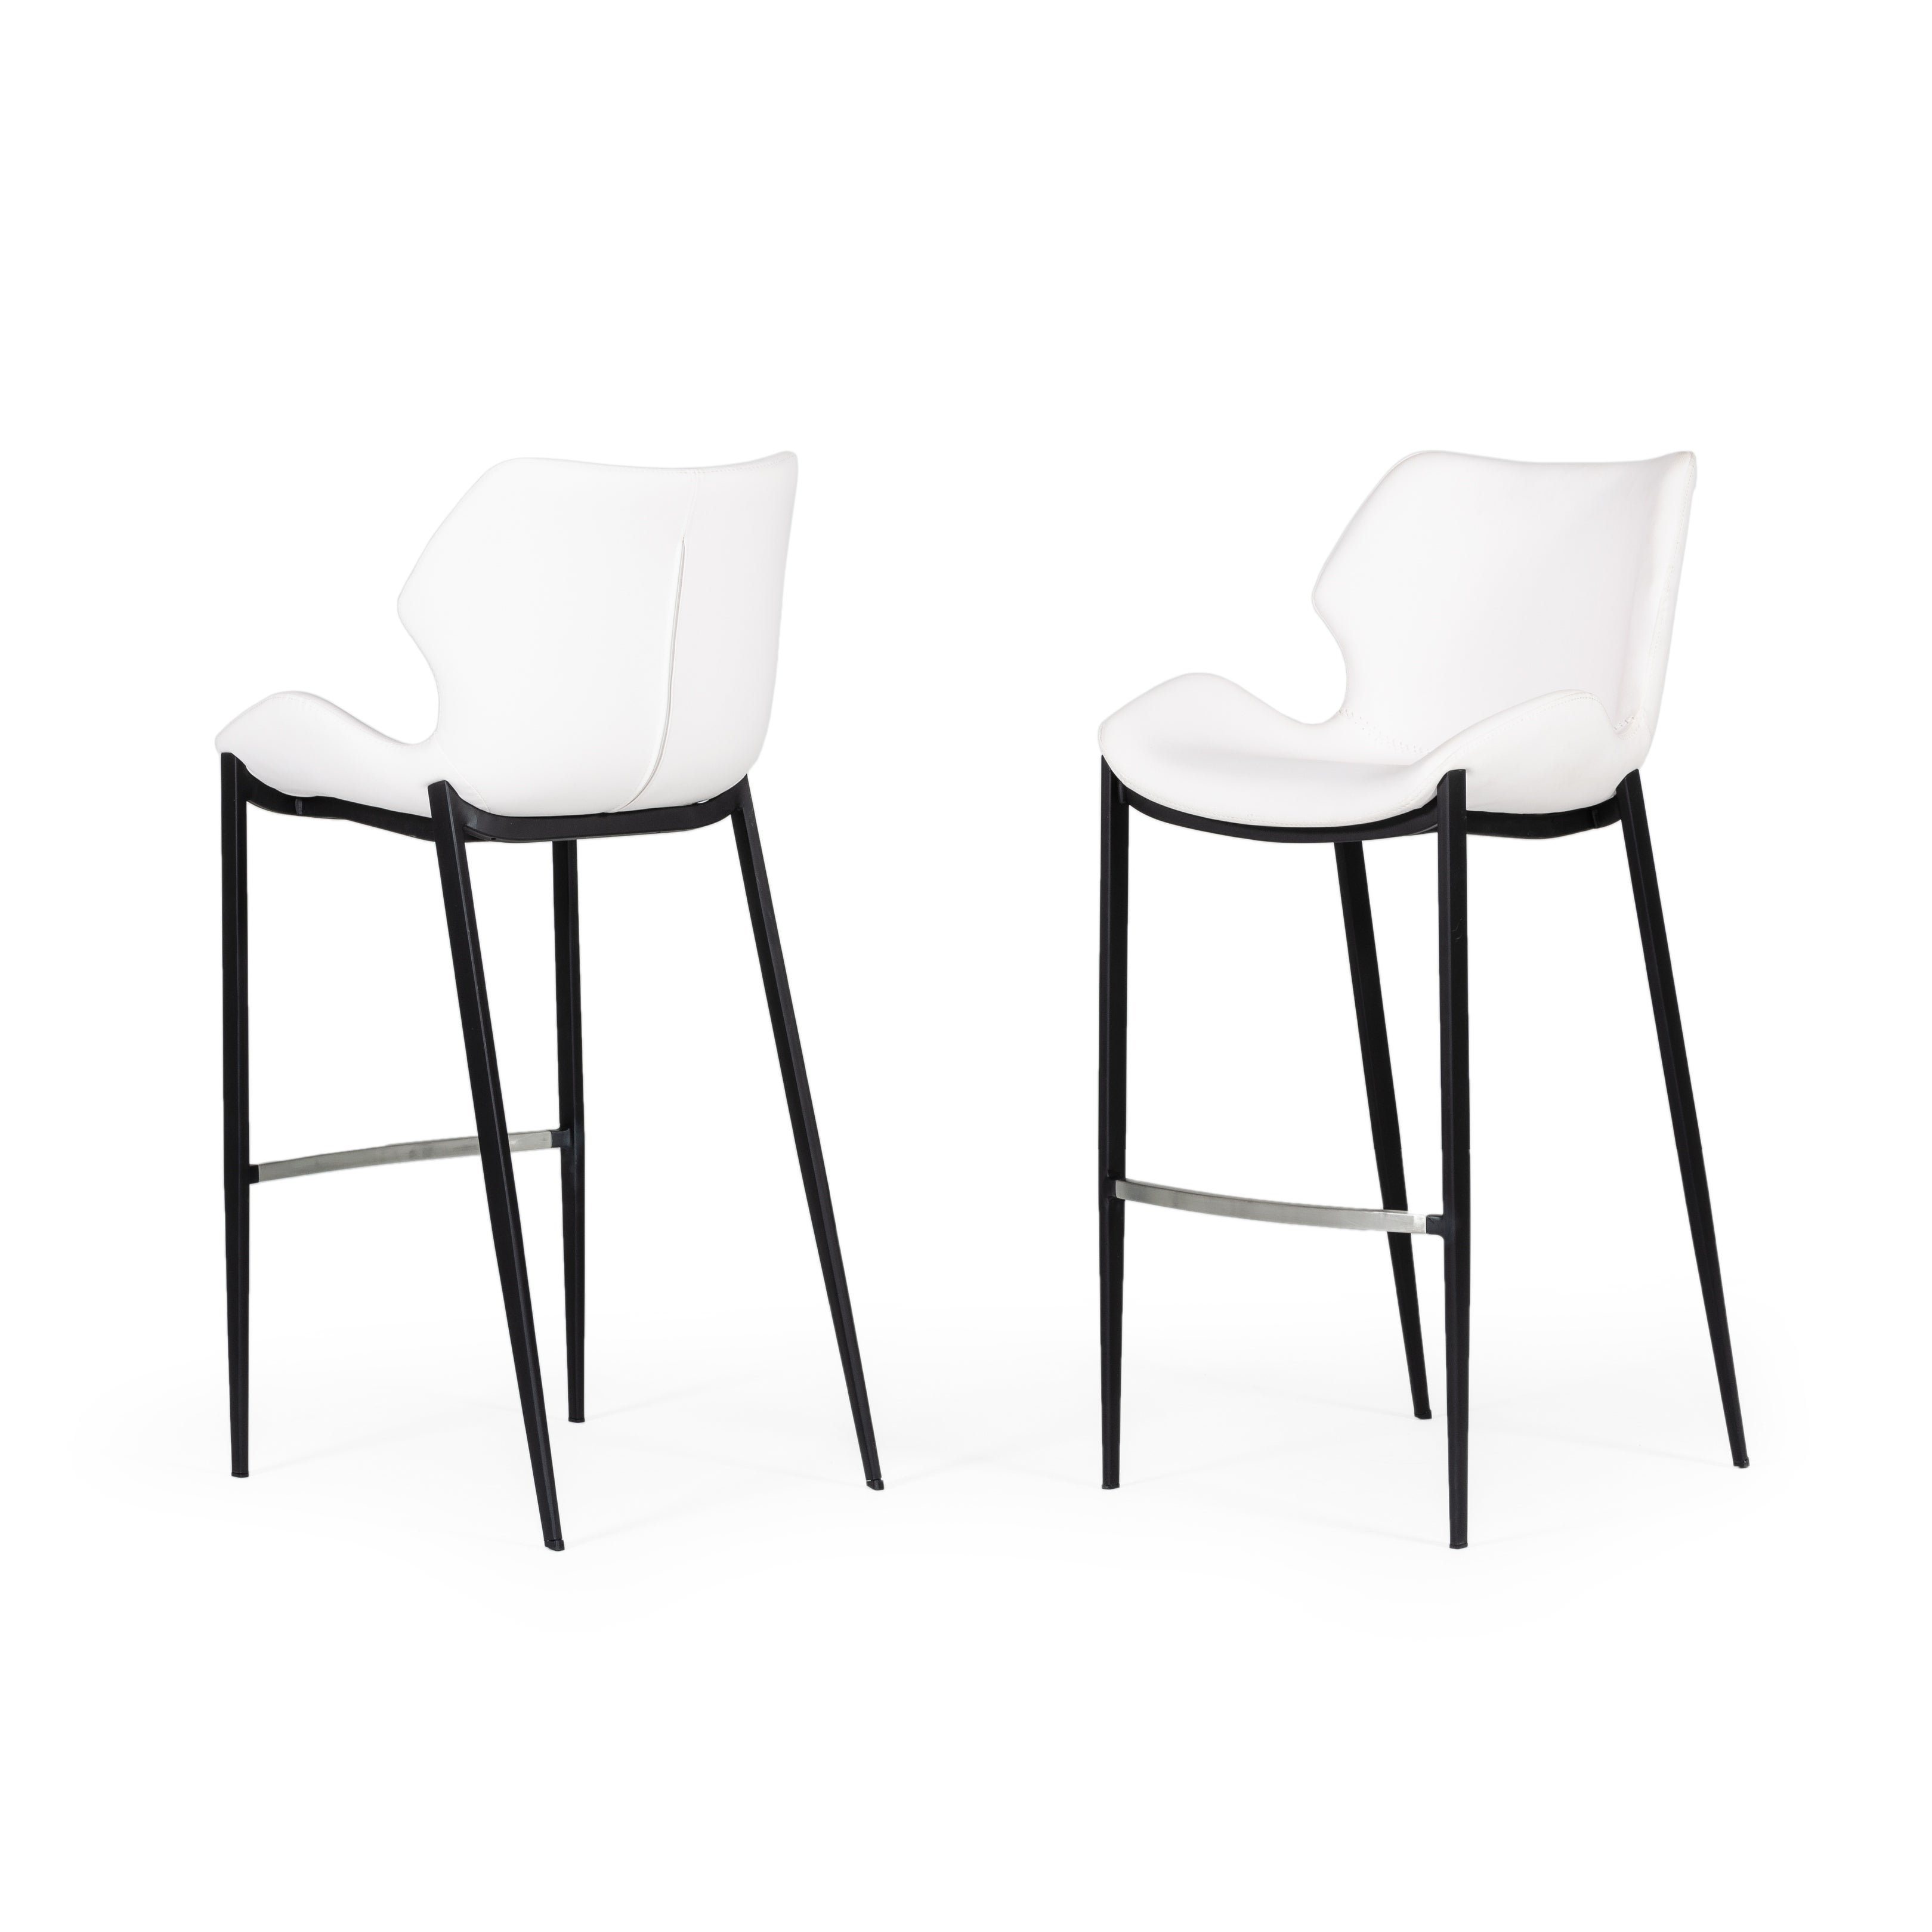 Image of: Shop Black Friday Deals On Modrest Ithaca Modern White Leatherette Bar Stool Set Of 2 Overstock 31638479